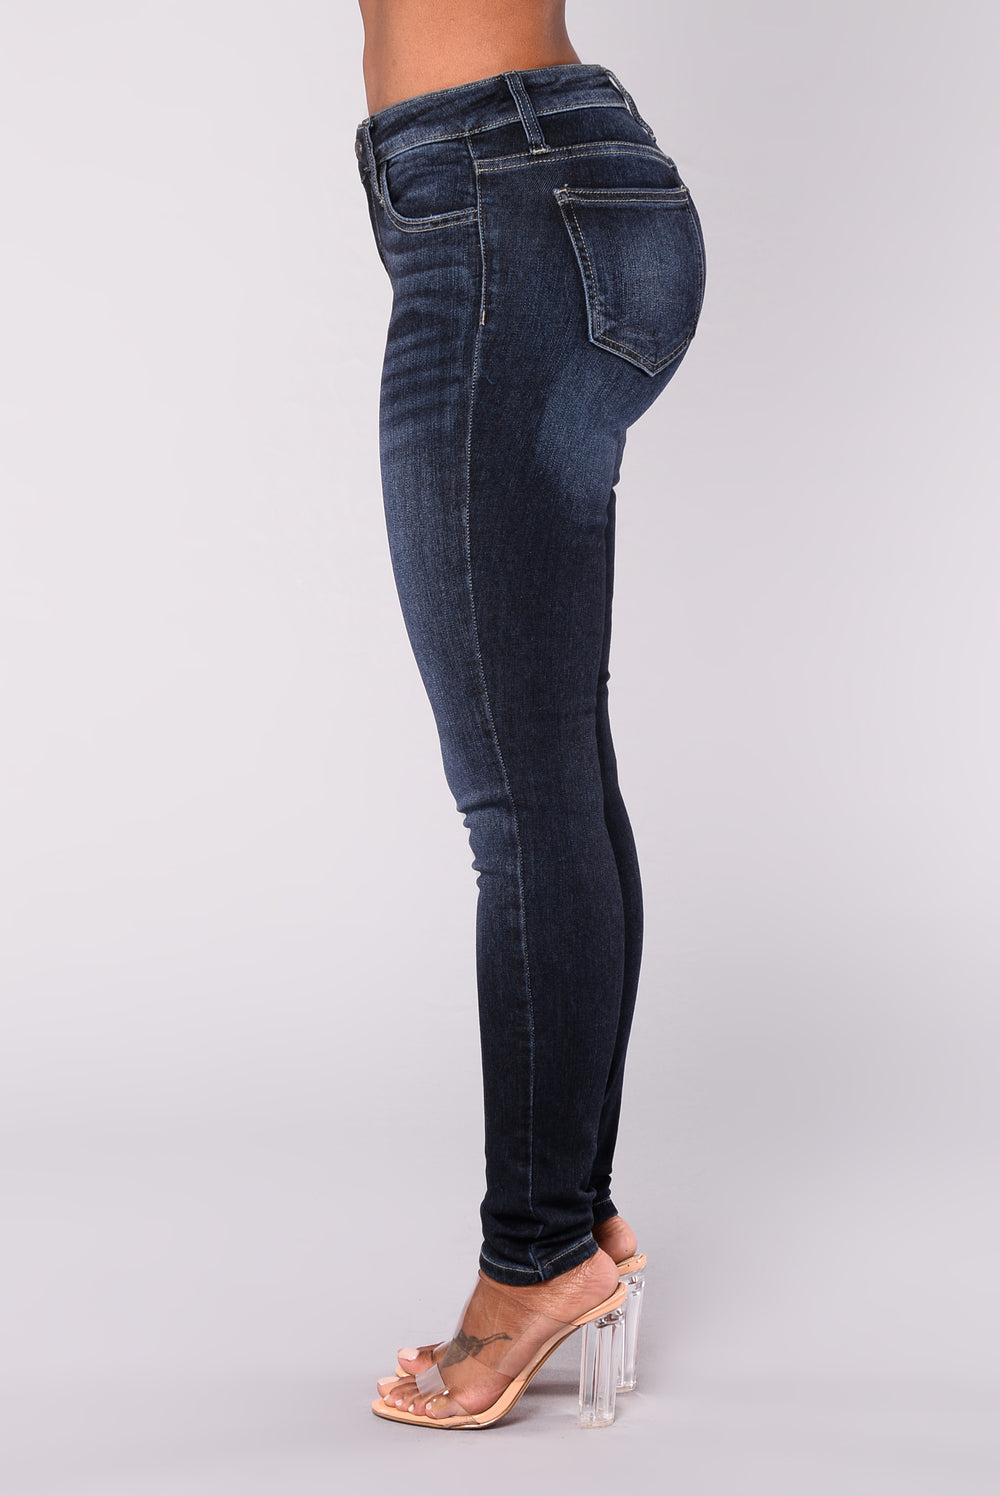 Eyes On Me Jeans - Dark Denim